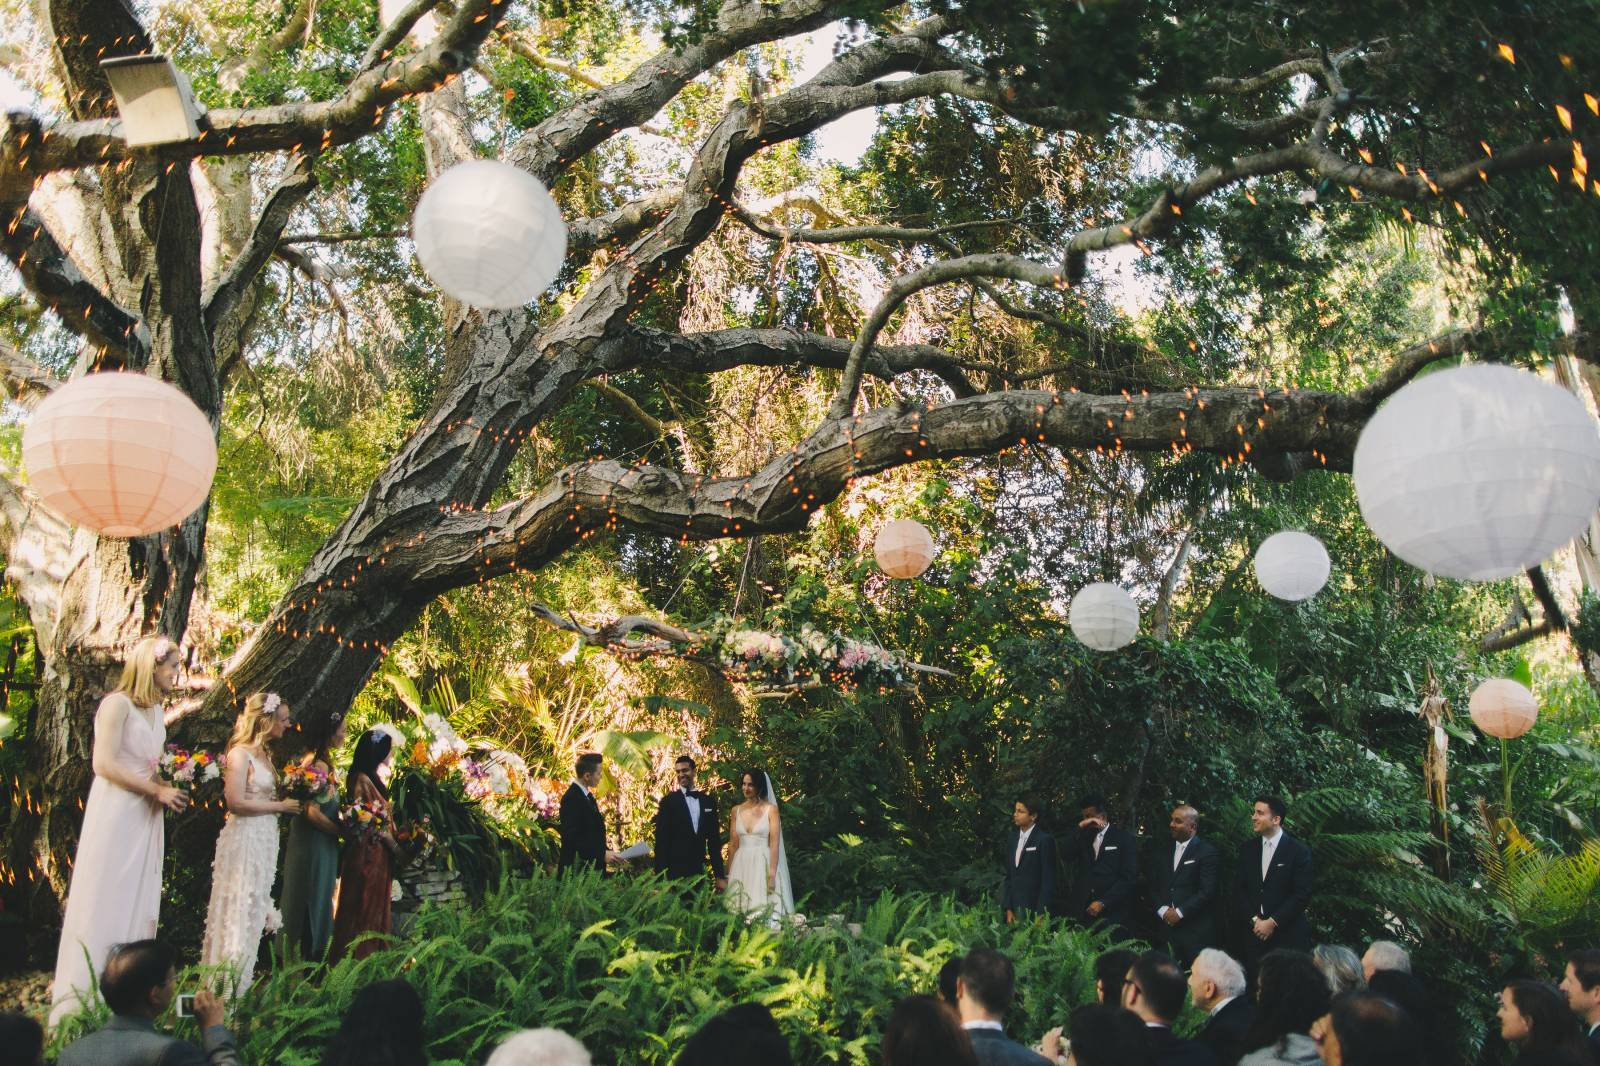 The Holly Farm In Carmel California Has A Special Ability To Transport You Magical Place Beyond Montery Bay Area This Retreat Style Wedding Venue